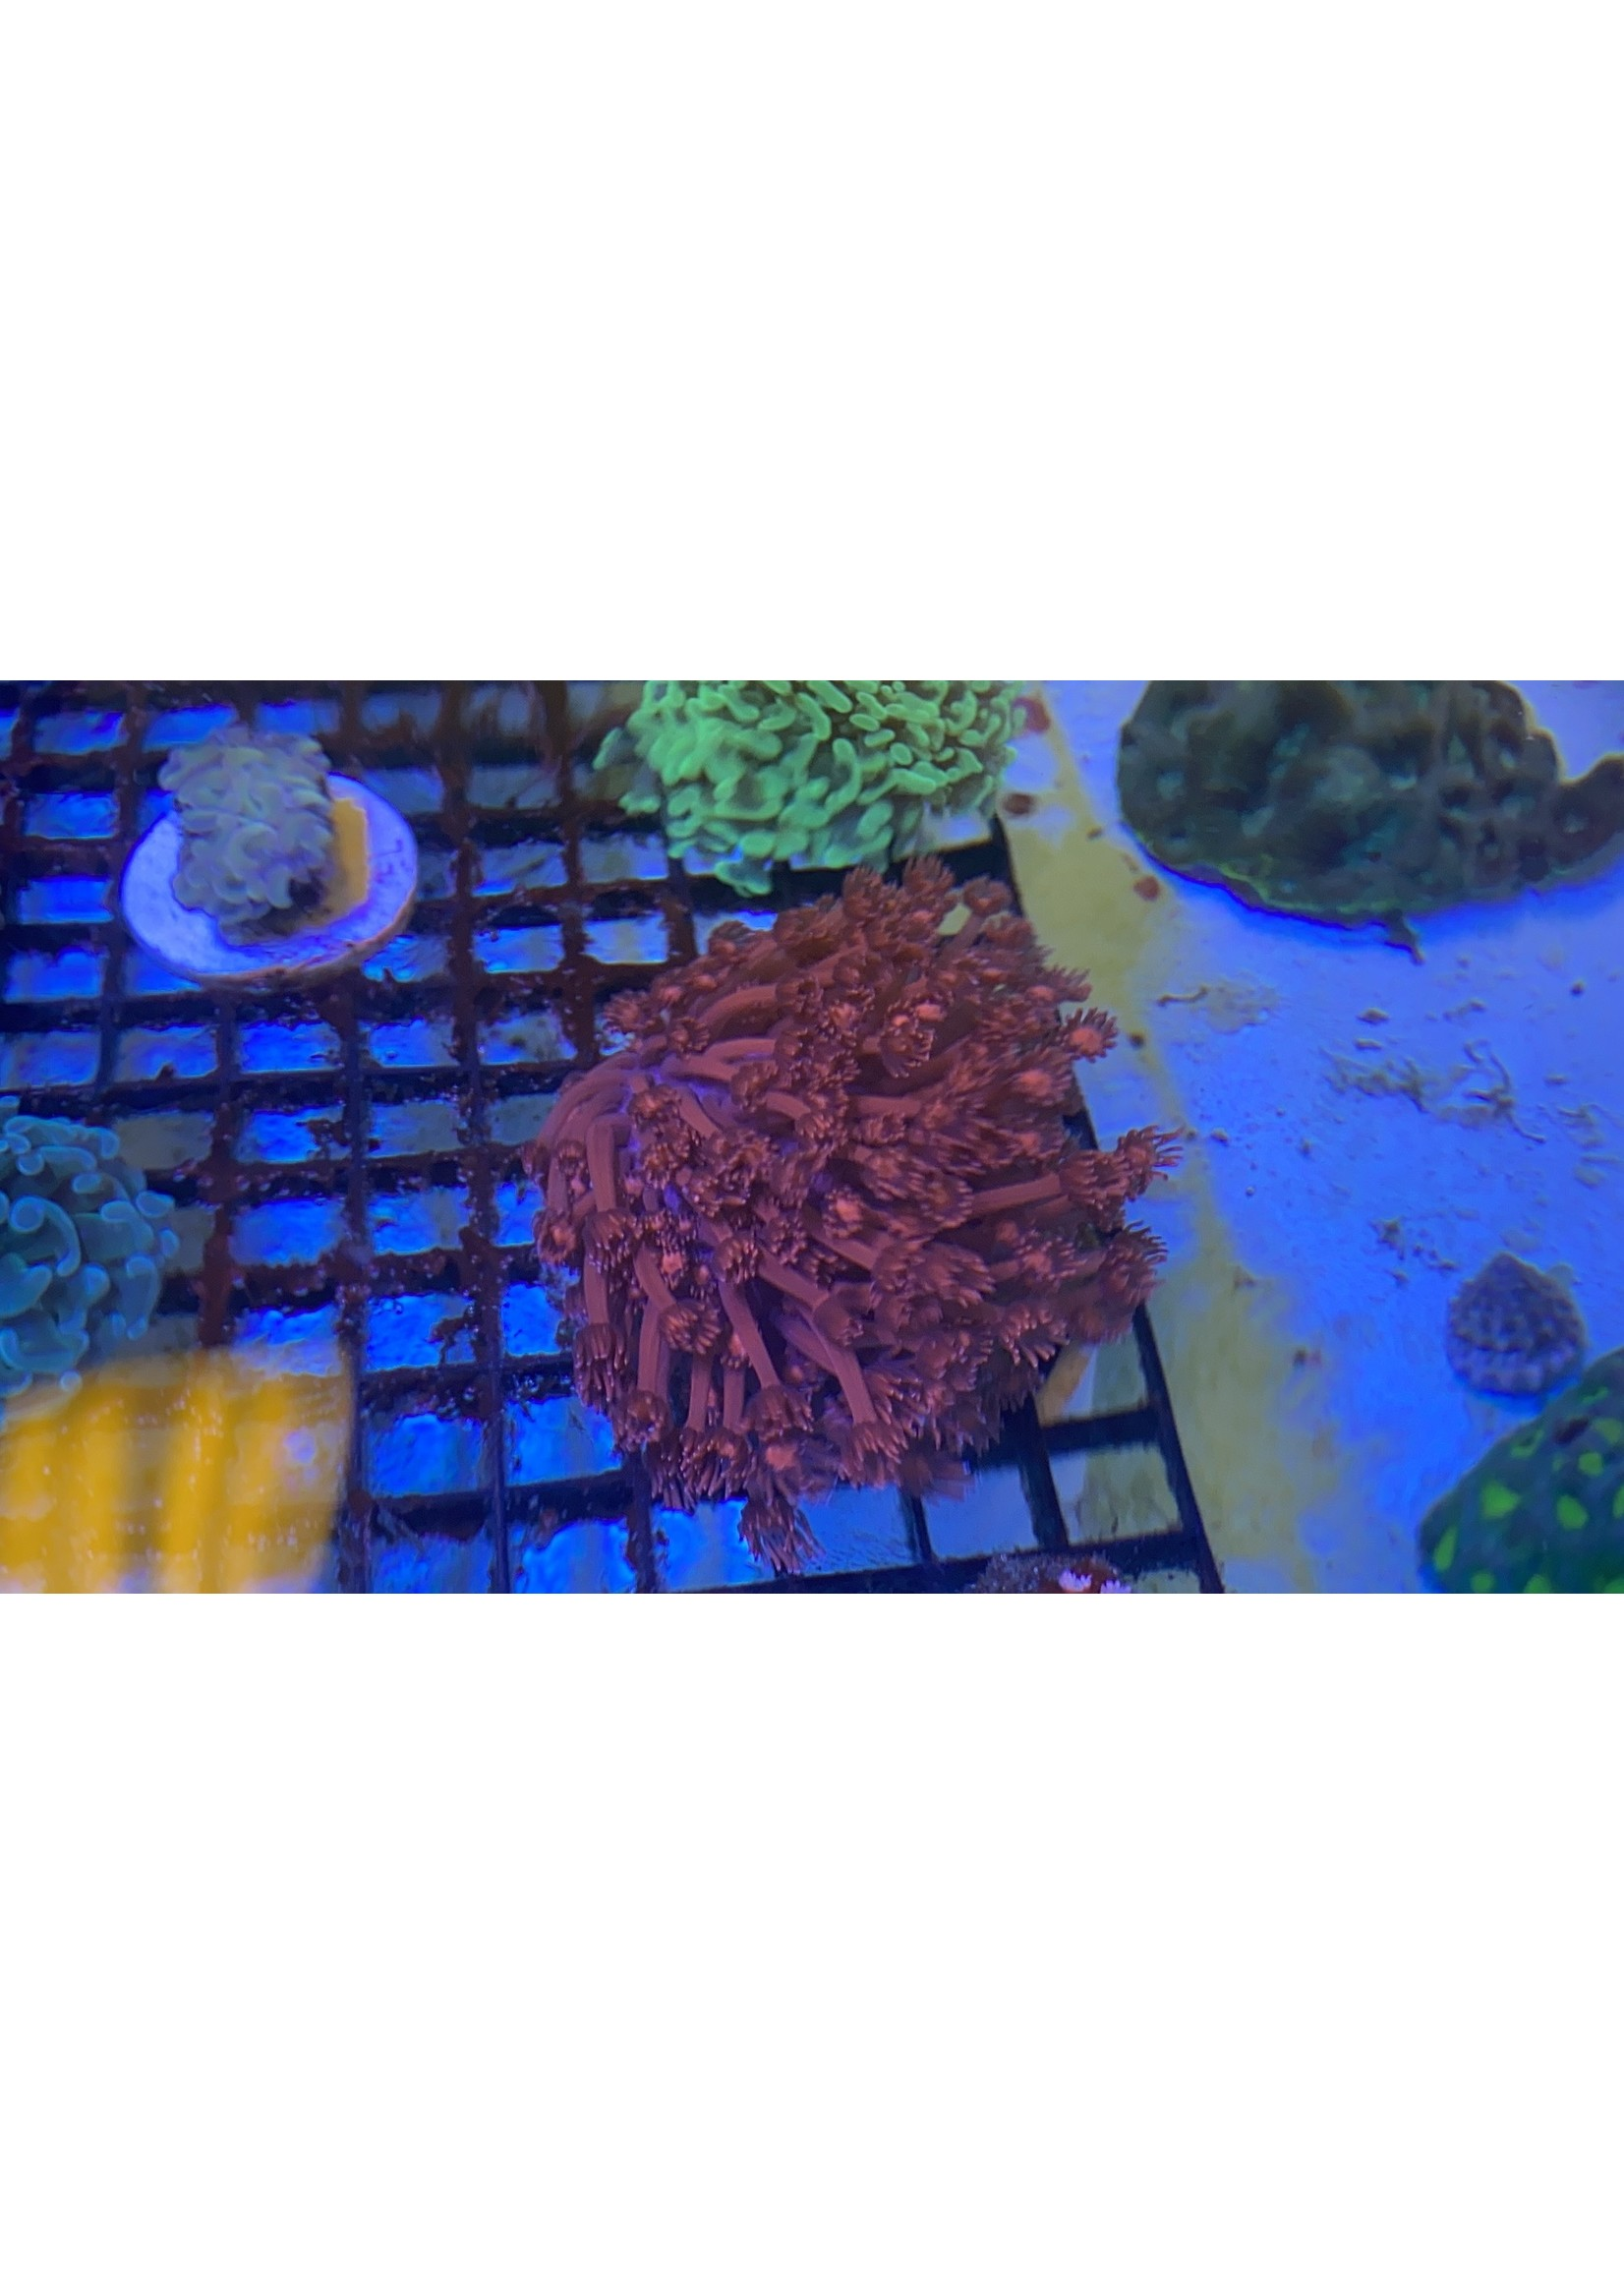 Indo  Blood Red Goniporia Colony Lg